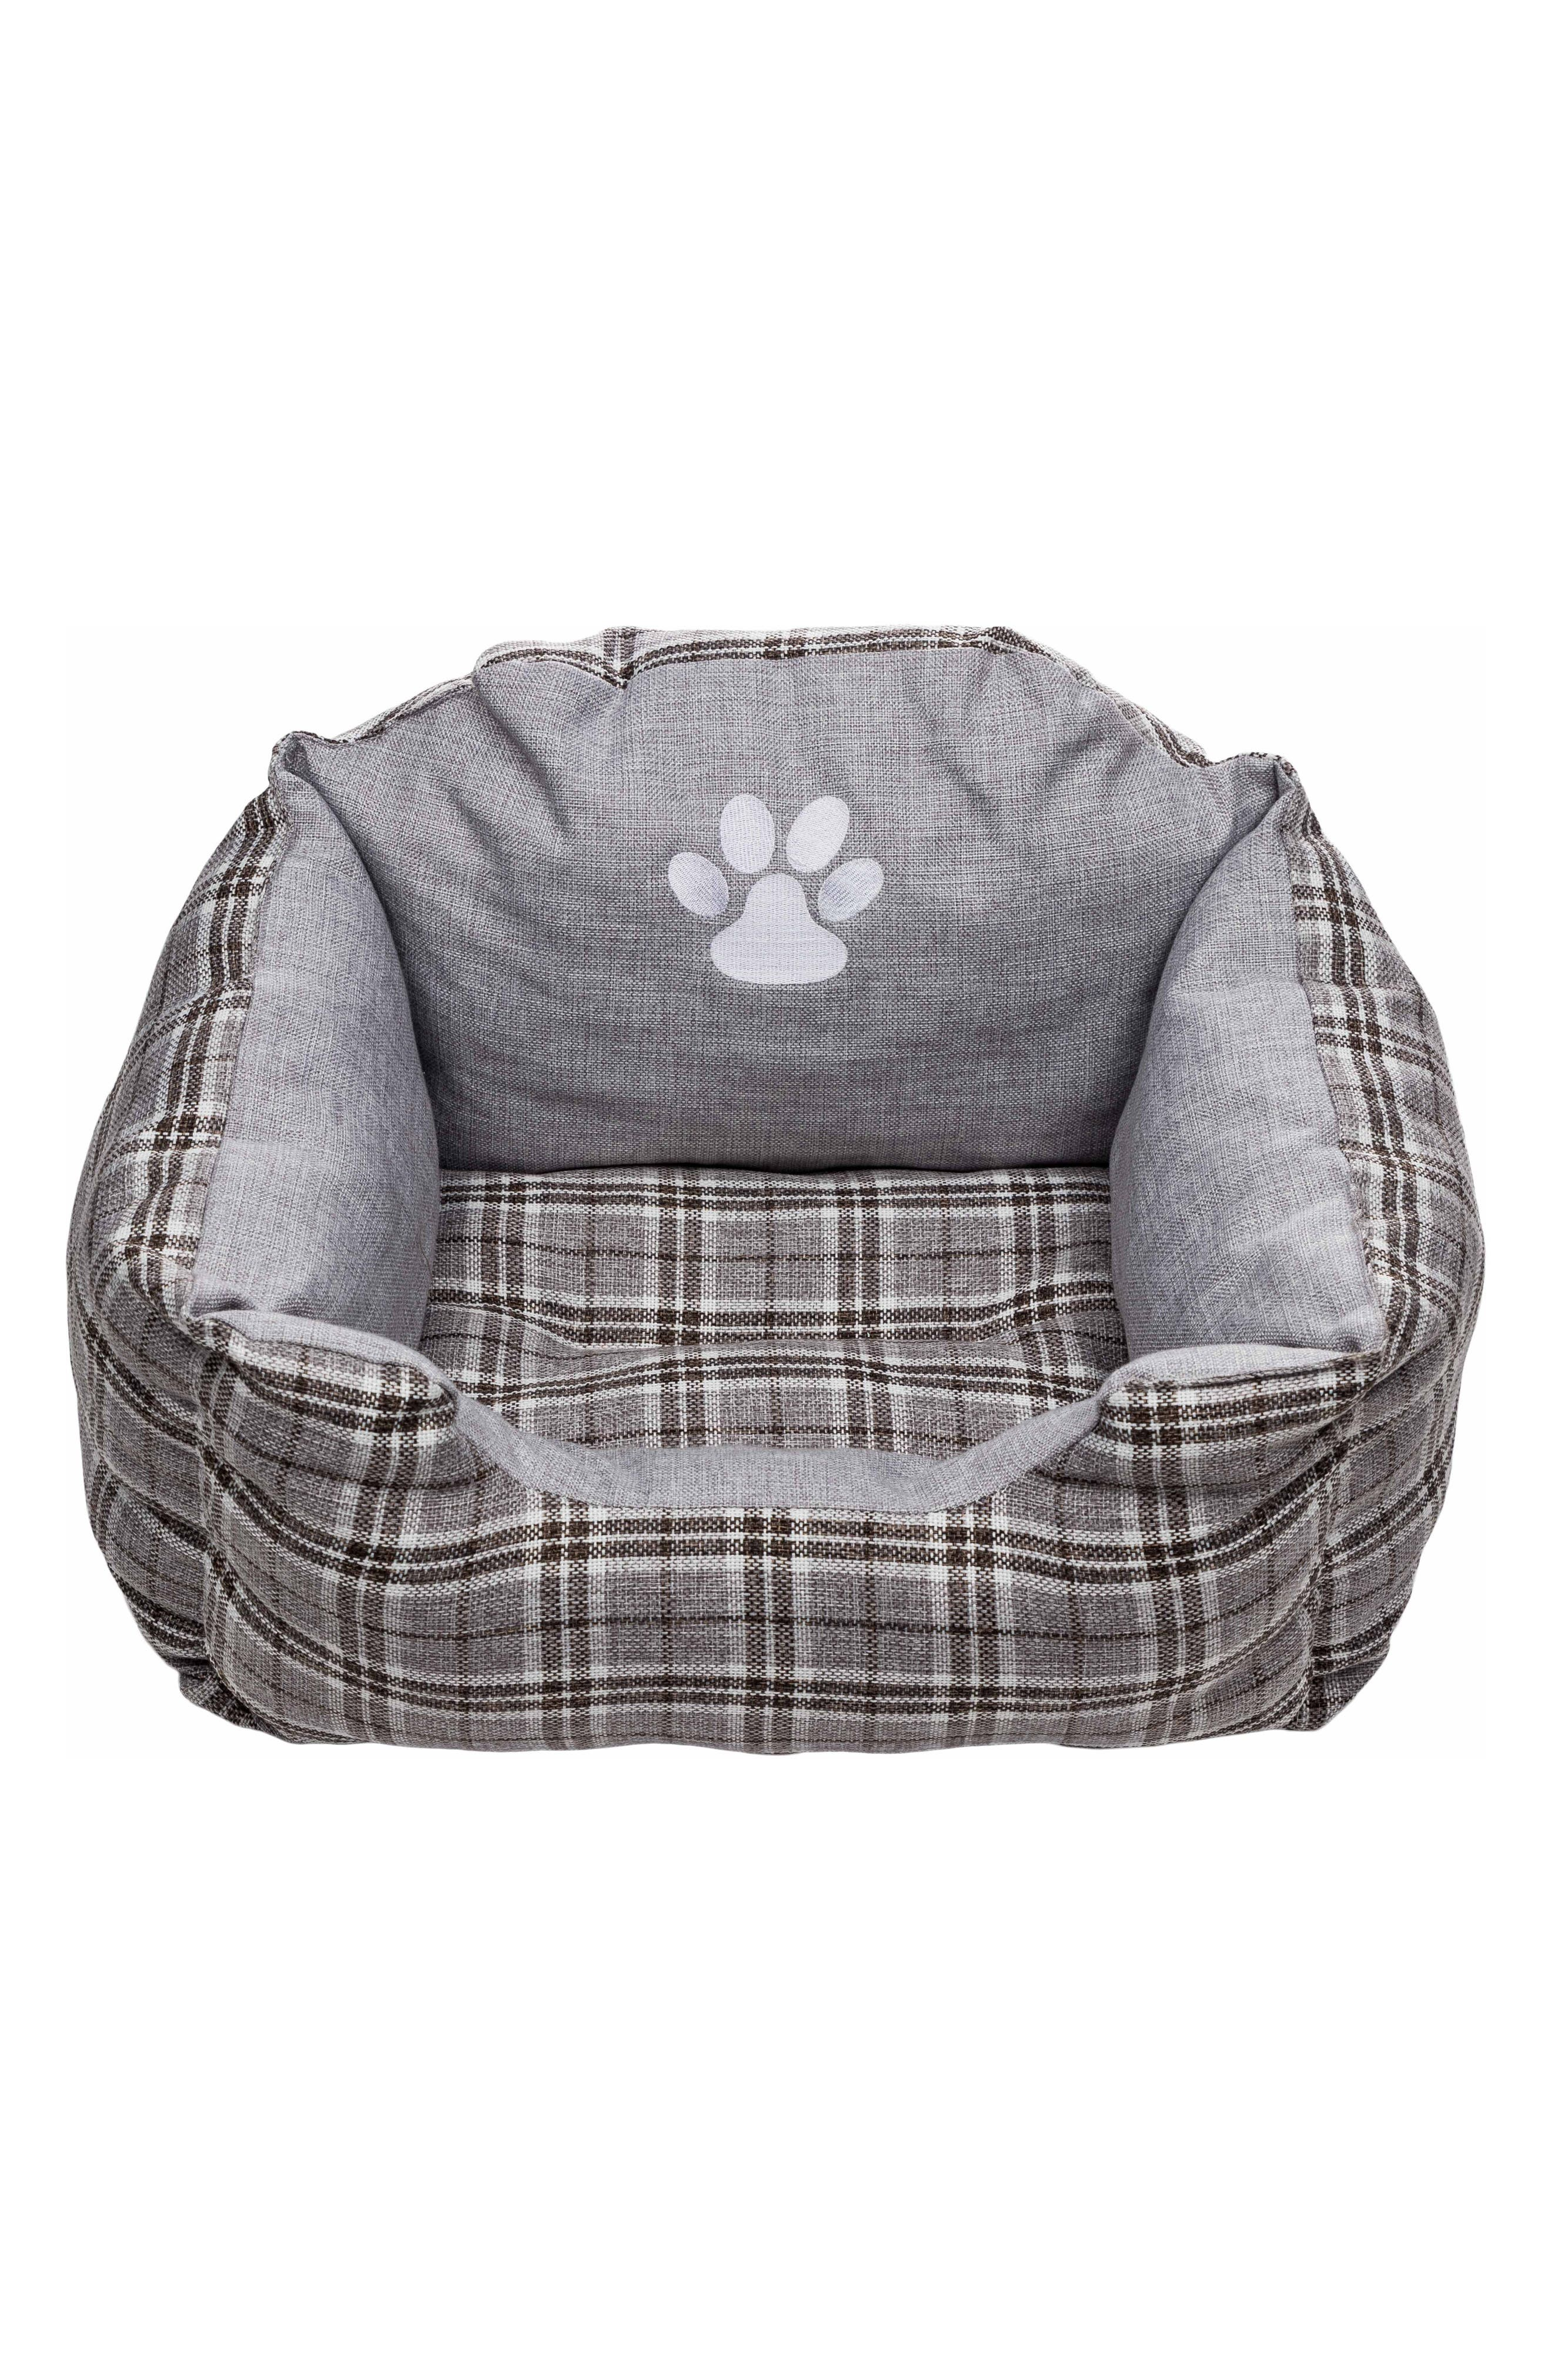 Harlee Small Square Pet Bed,                         Main,                         color, Grey